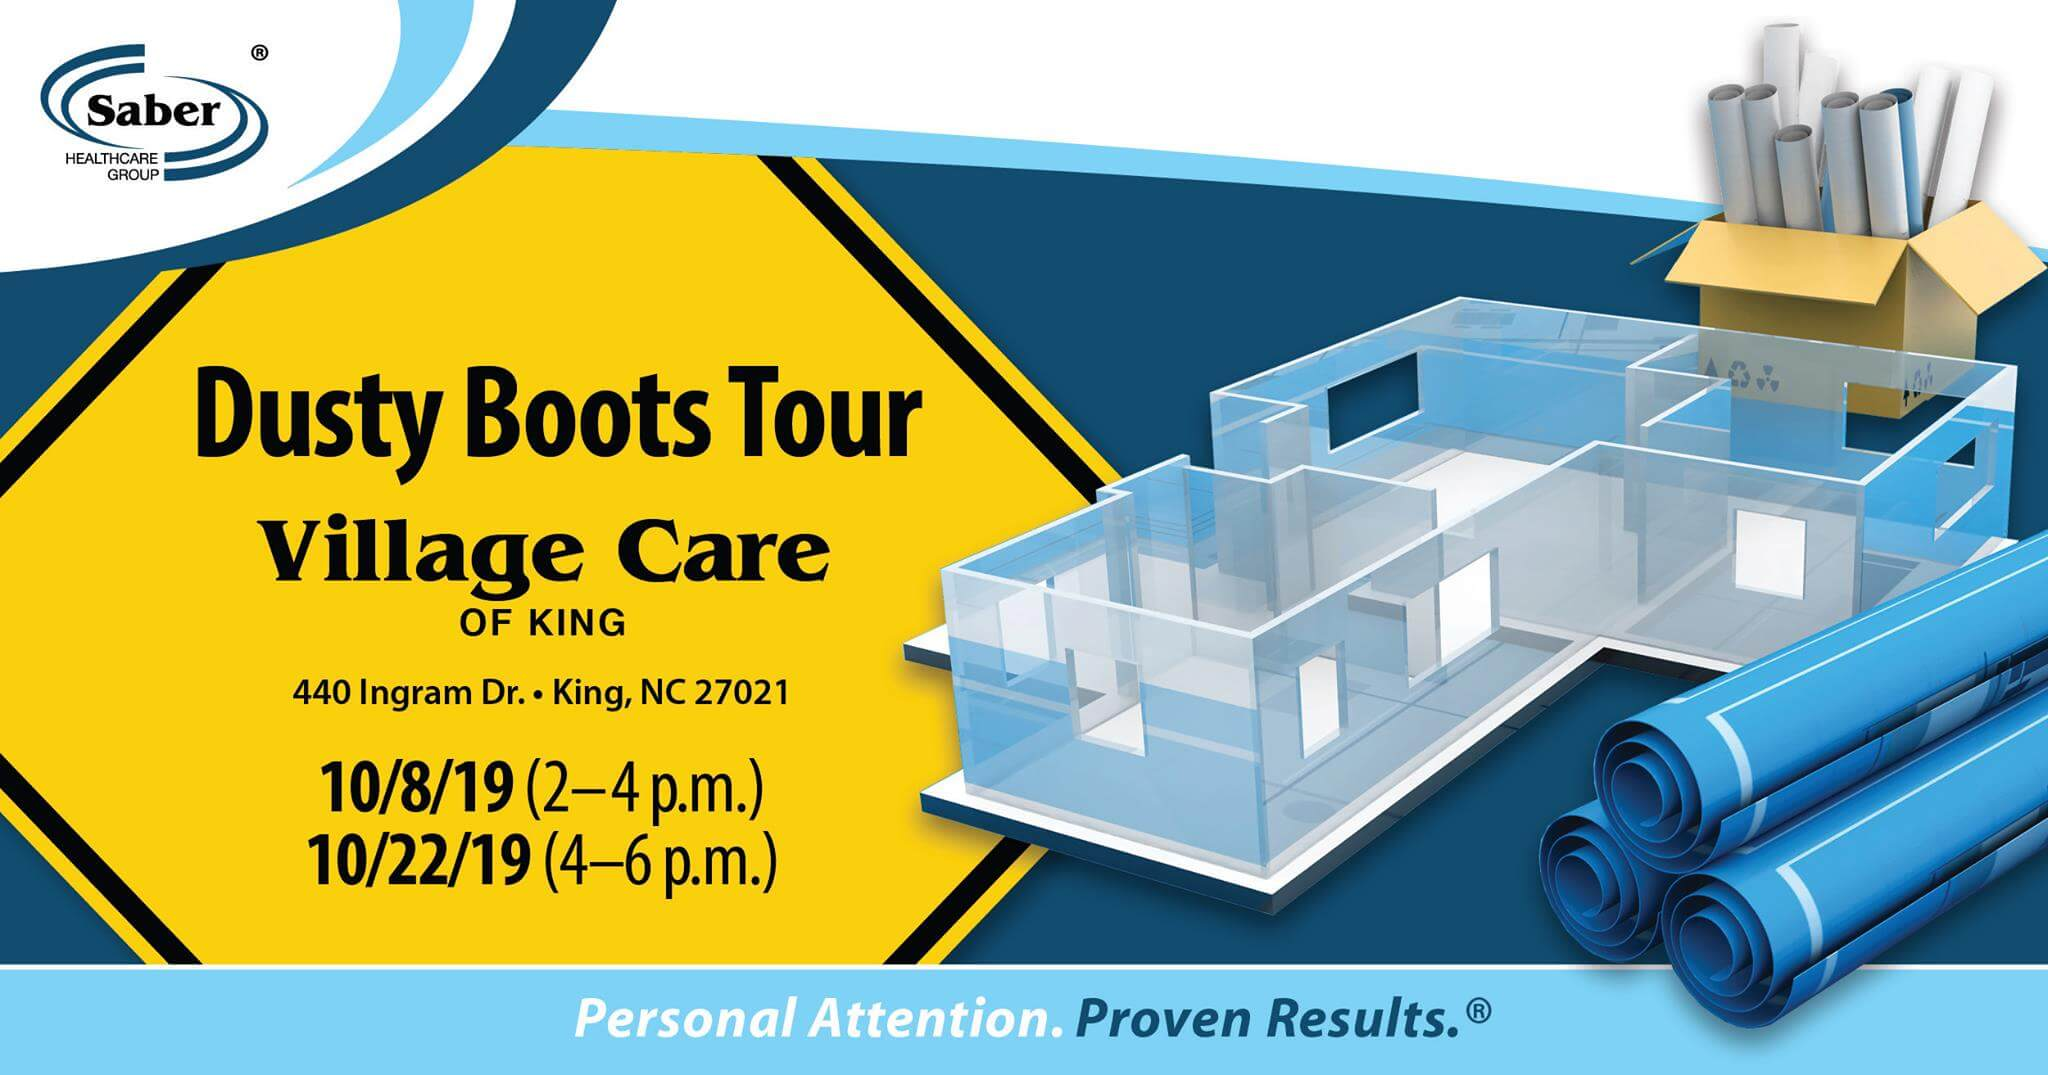 Dusty Boots Tour at Village Care of King